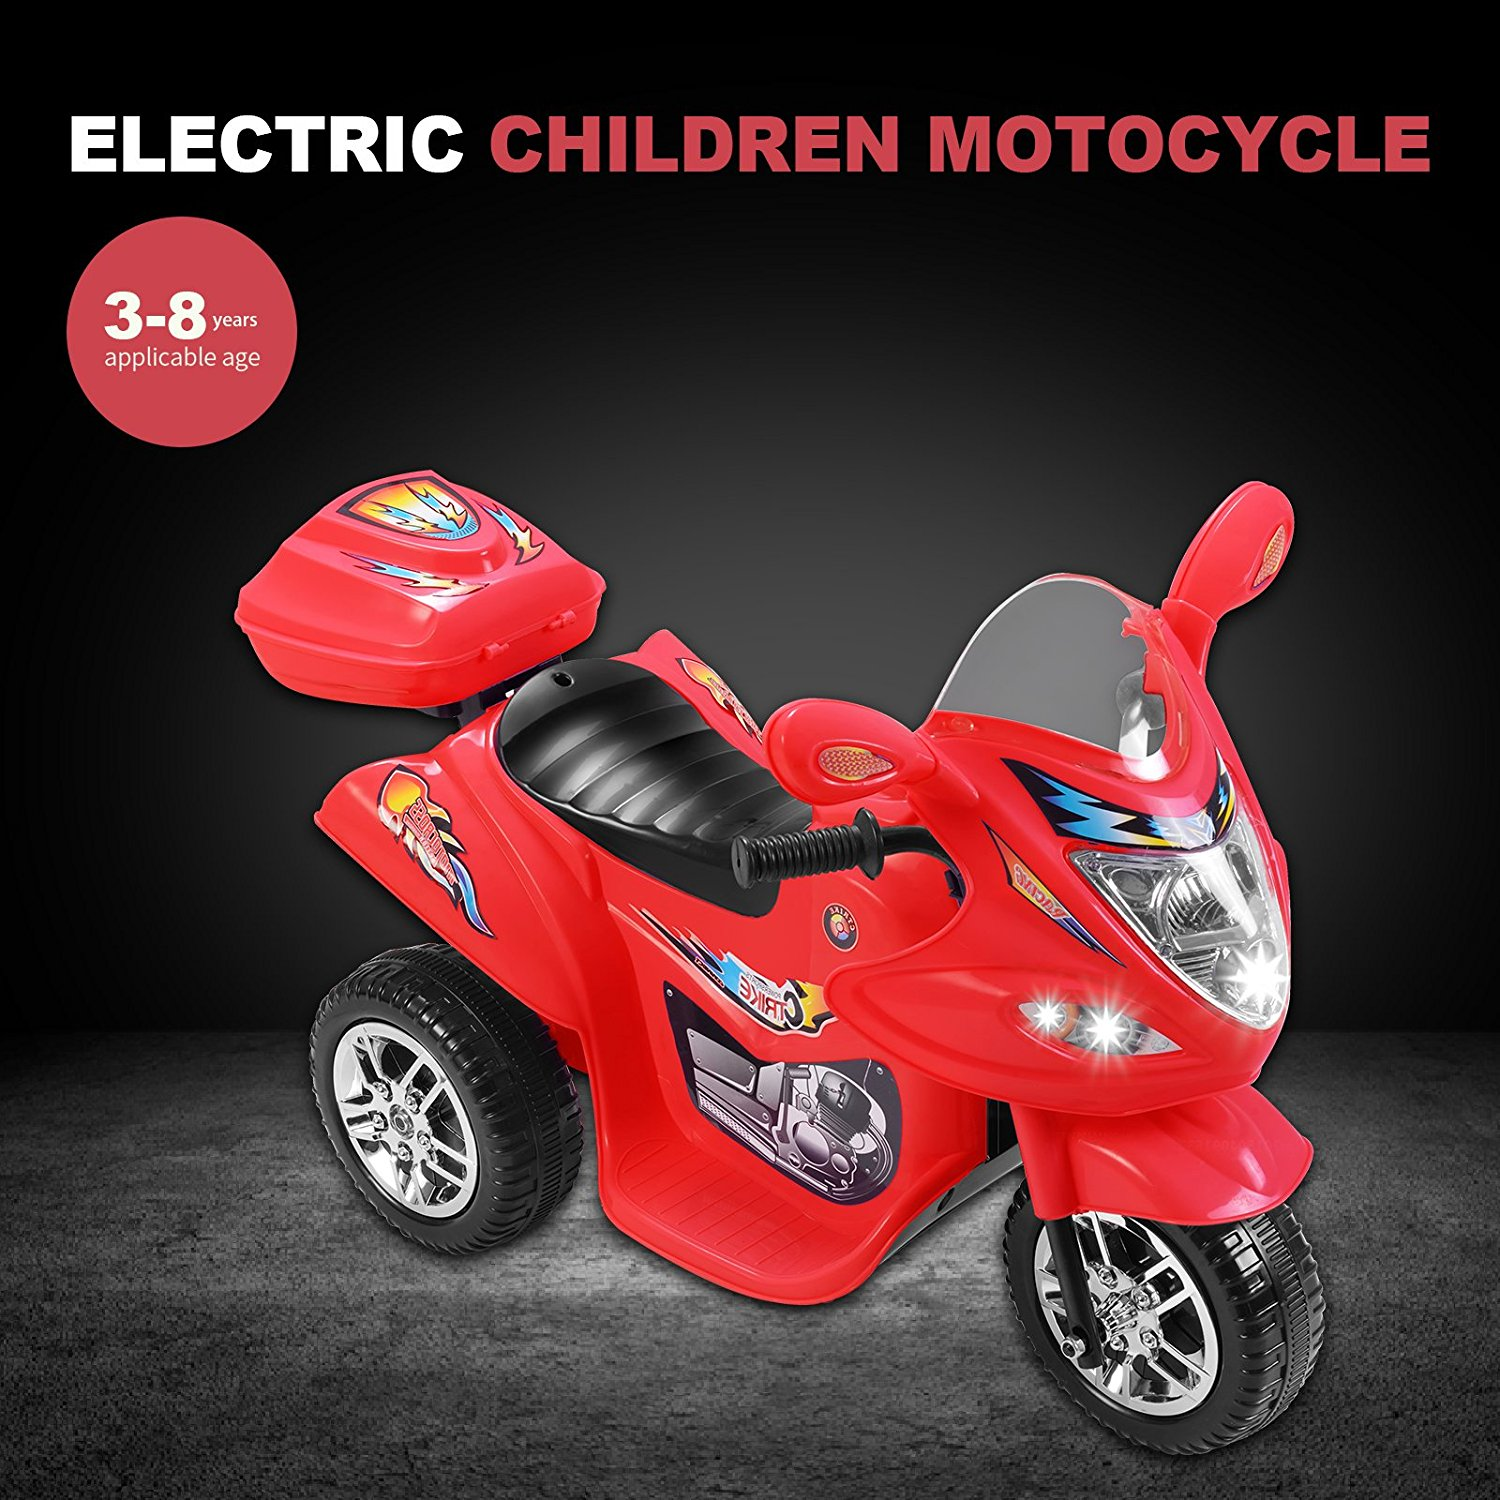 Red 6V Kids Ride on Motorcycle Toy Battery Powered Electric w Remote Control by Uenjoy